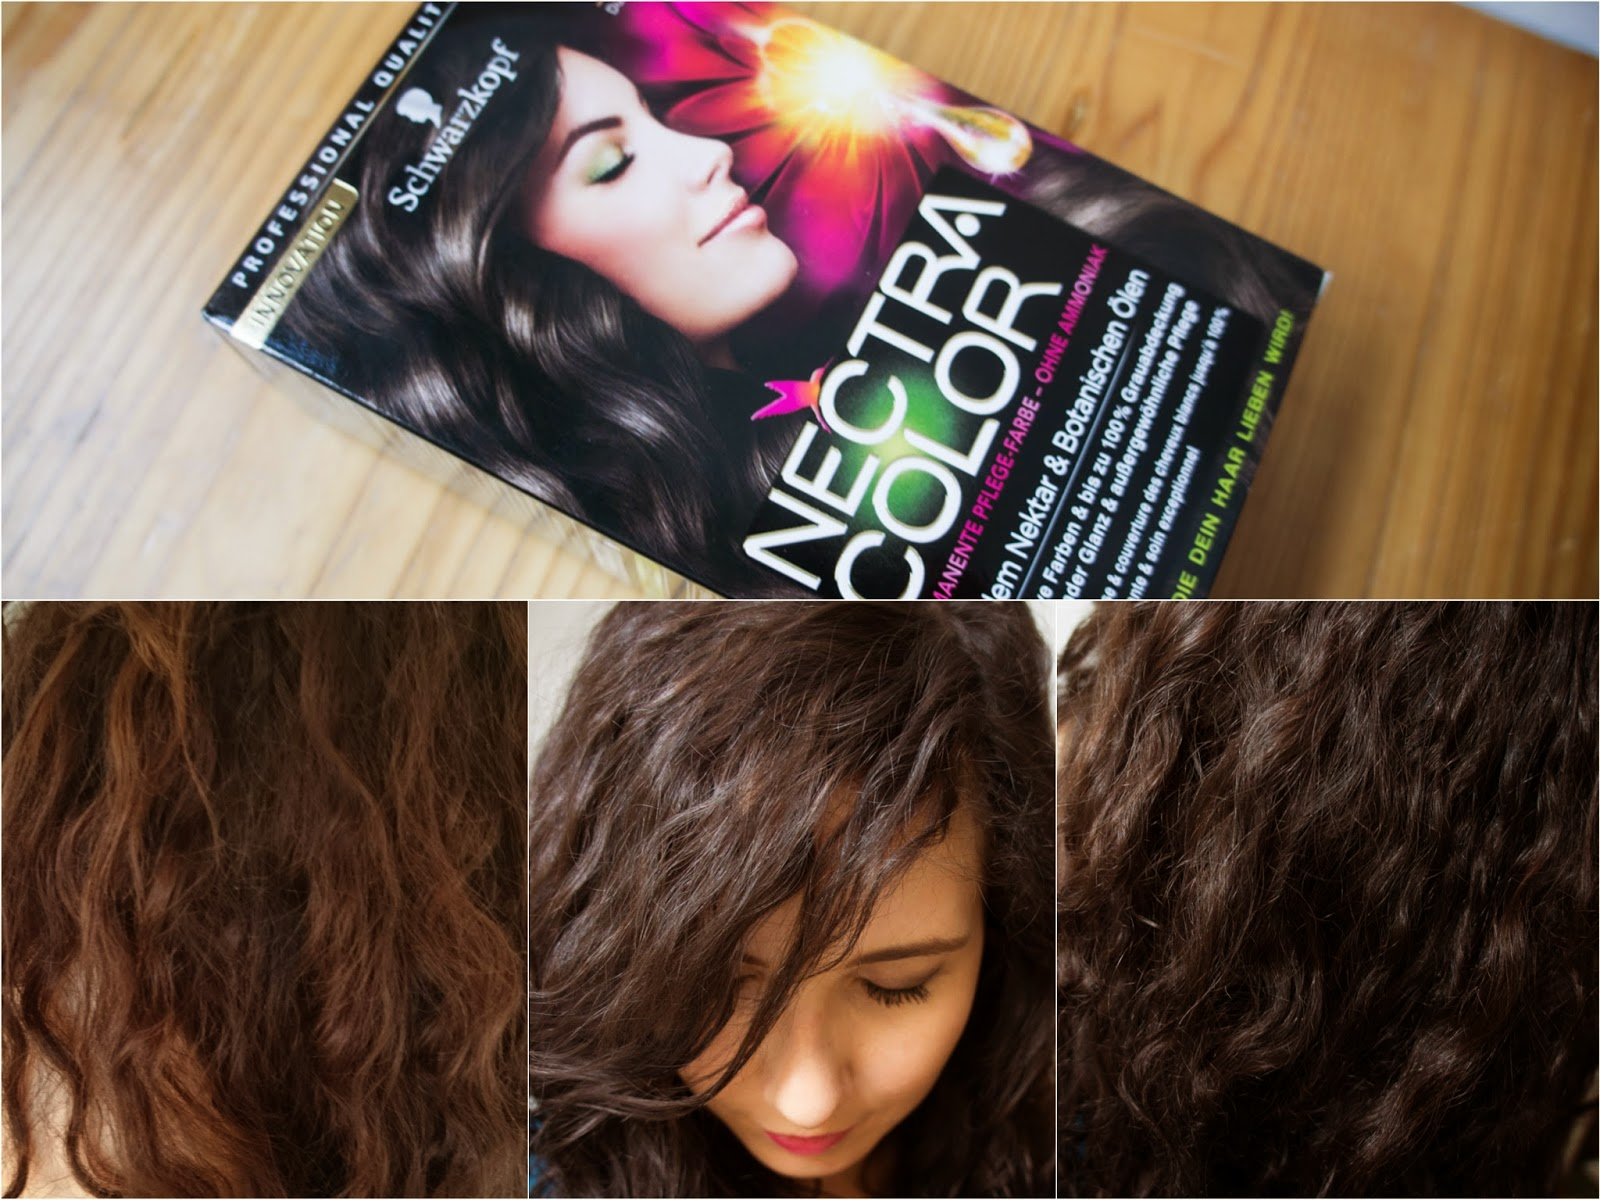 as ive been dyeing my hair for about 6 years now they needed a new color pretty urgent my last color didnt last long i will explain this shortly at the - Nectra Color Schwarzkopf